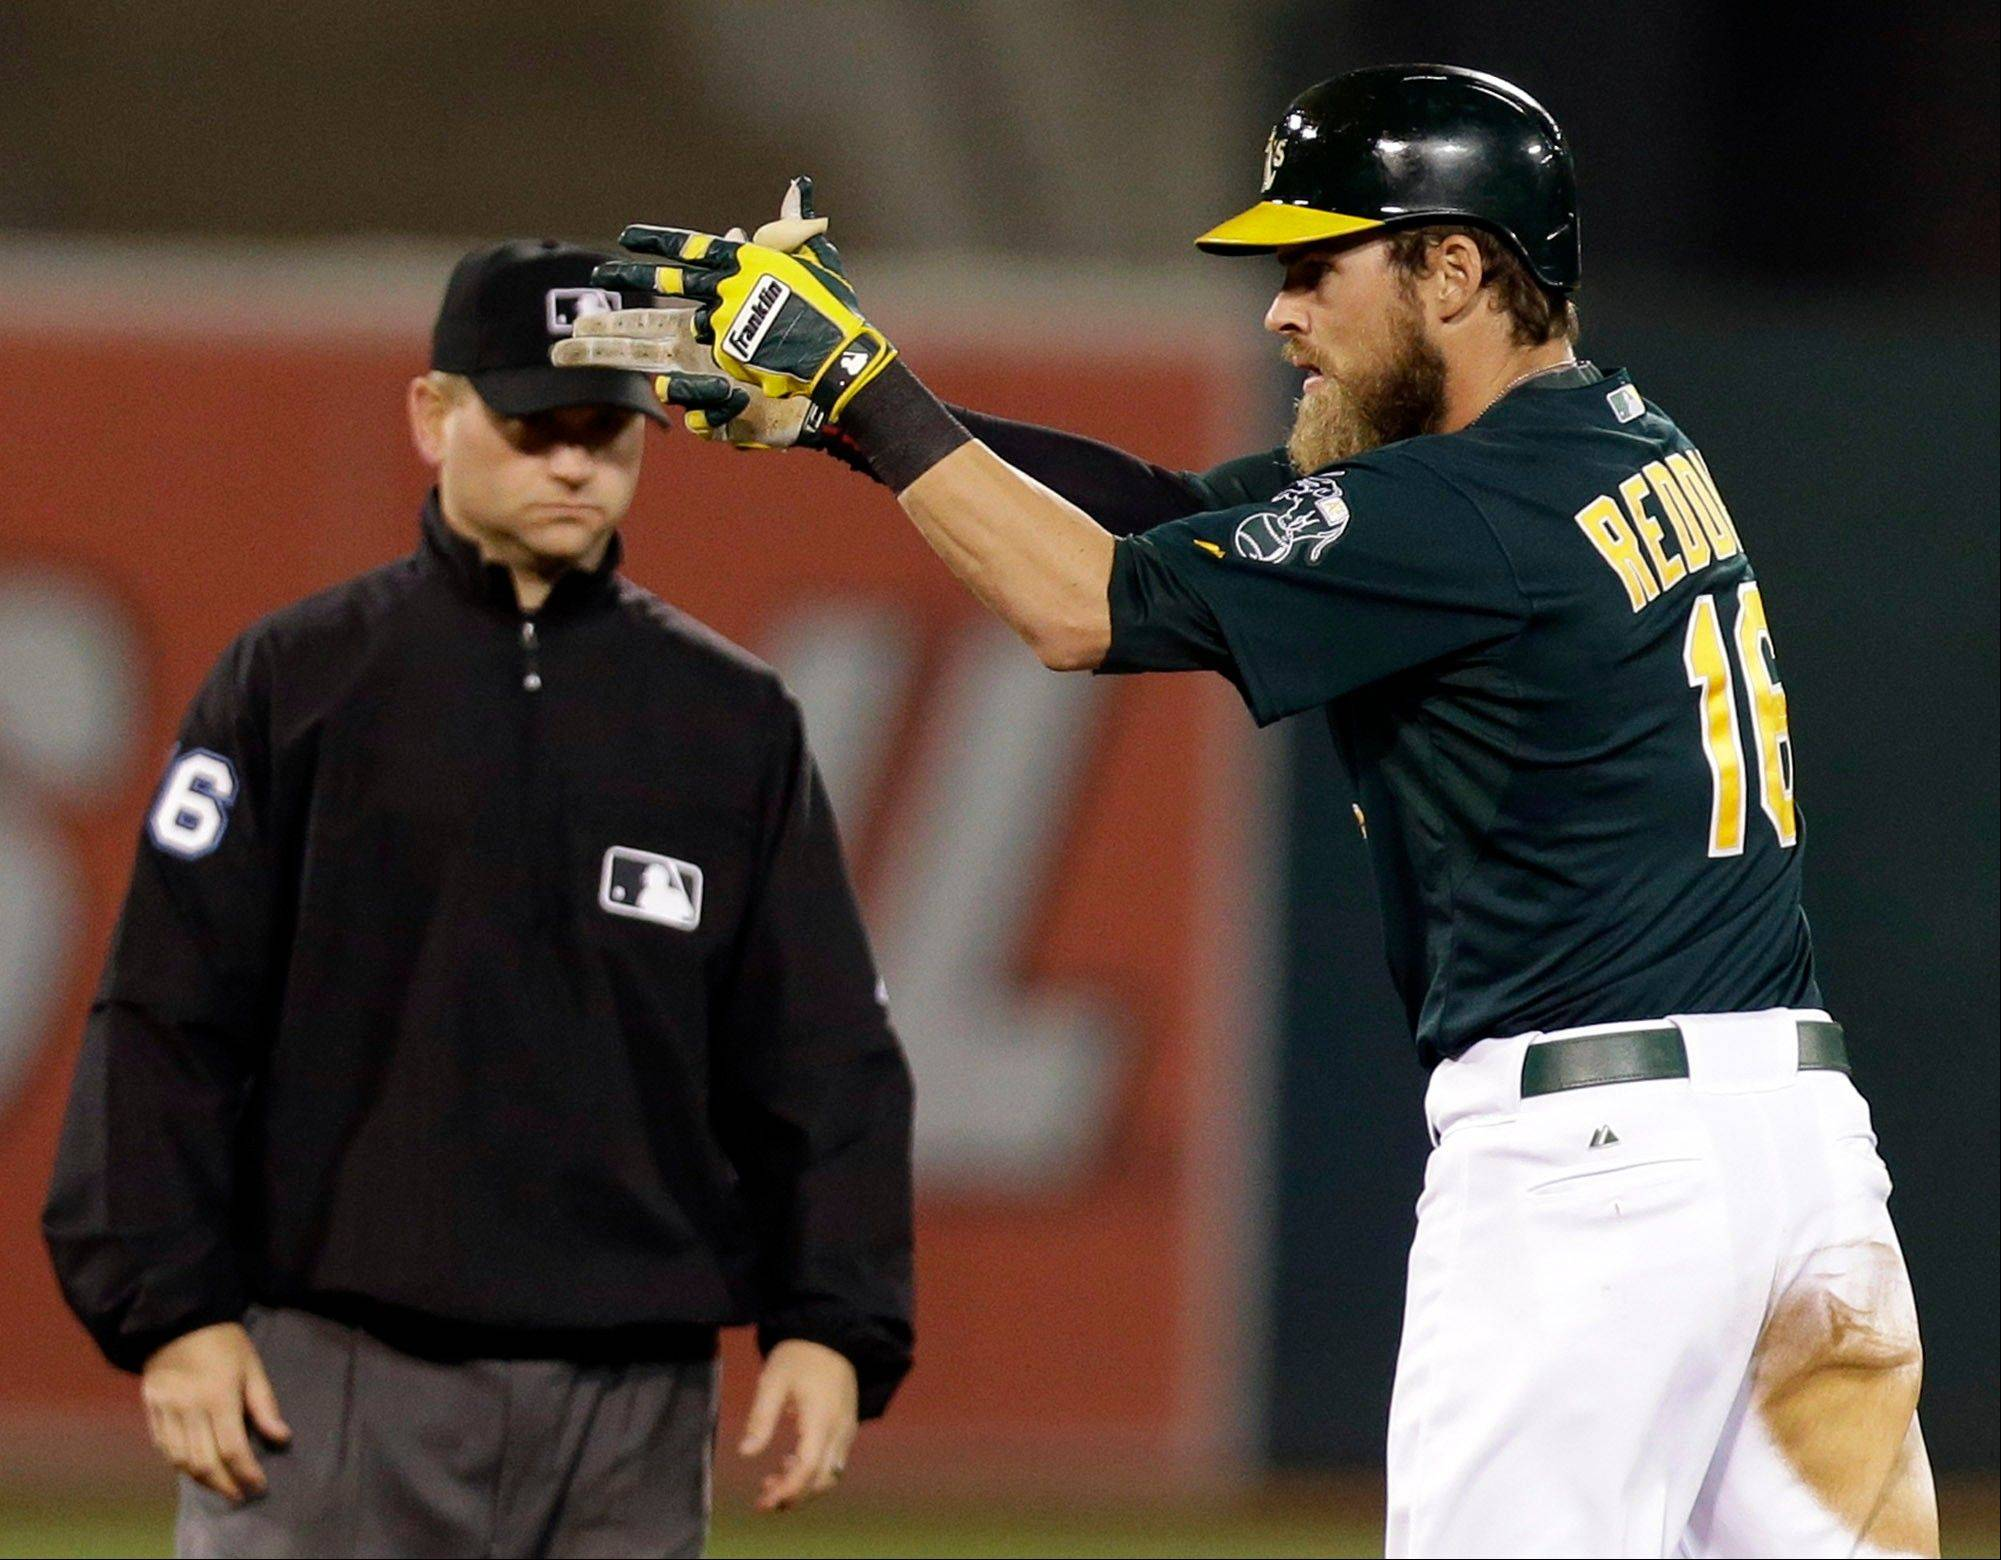 Oakland Athletics' Josh Reddick points to his dugout after driving in the first run of the game with an eighth-inning double against the Chicago White Sox on Friday in Oakland. The A's won the game, 3-0.